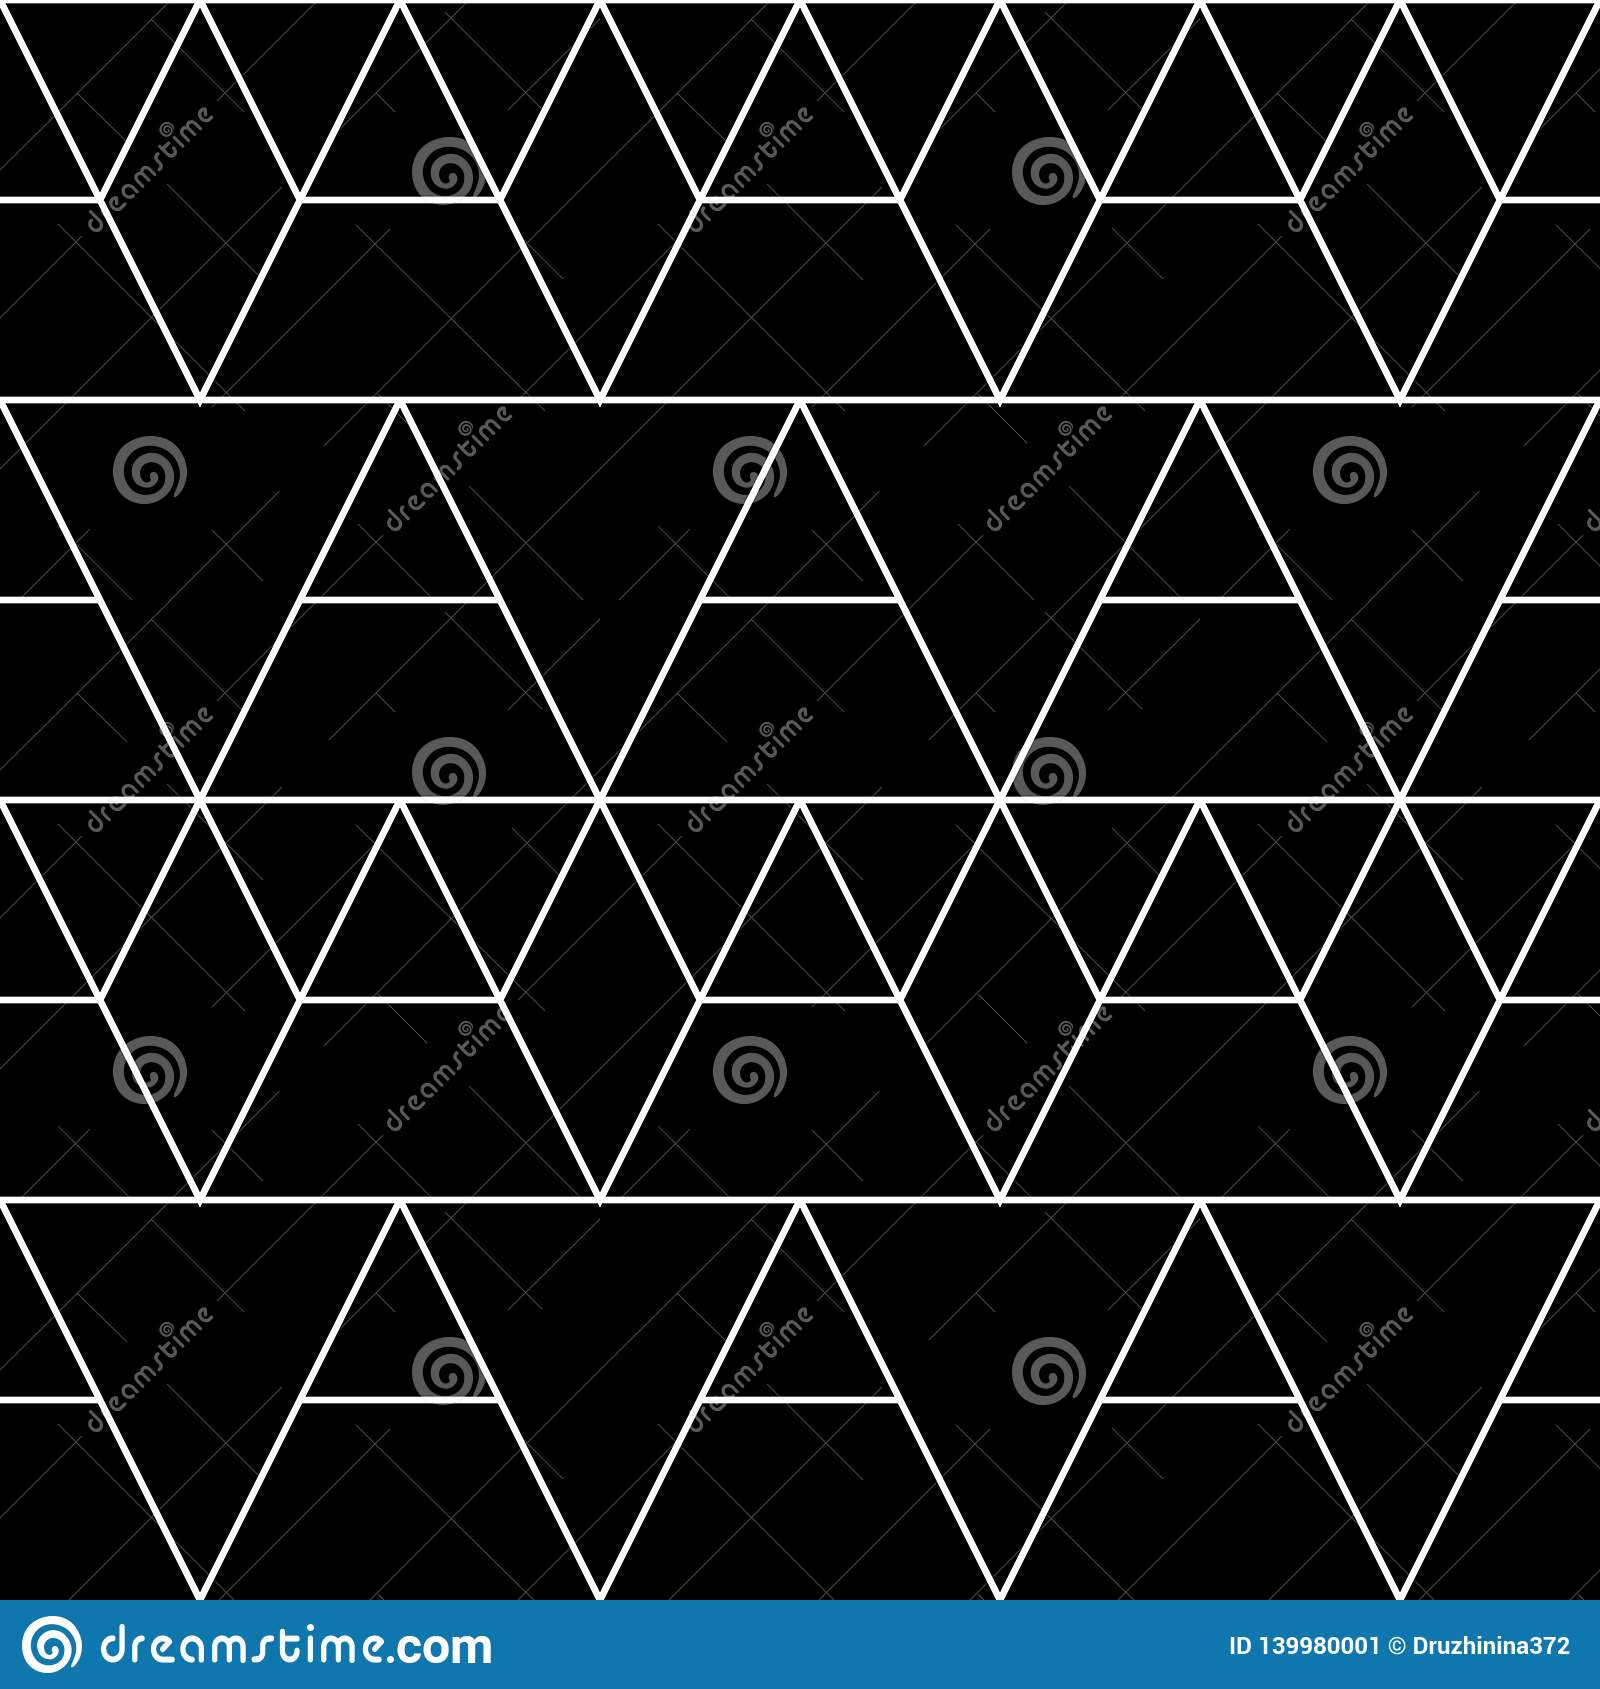 Seamless geometric pattern. Vector classical background in black and white color